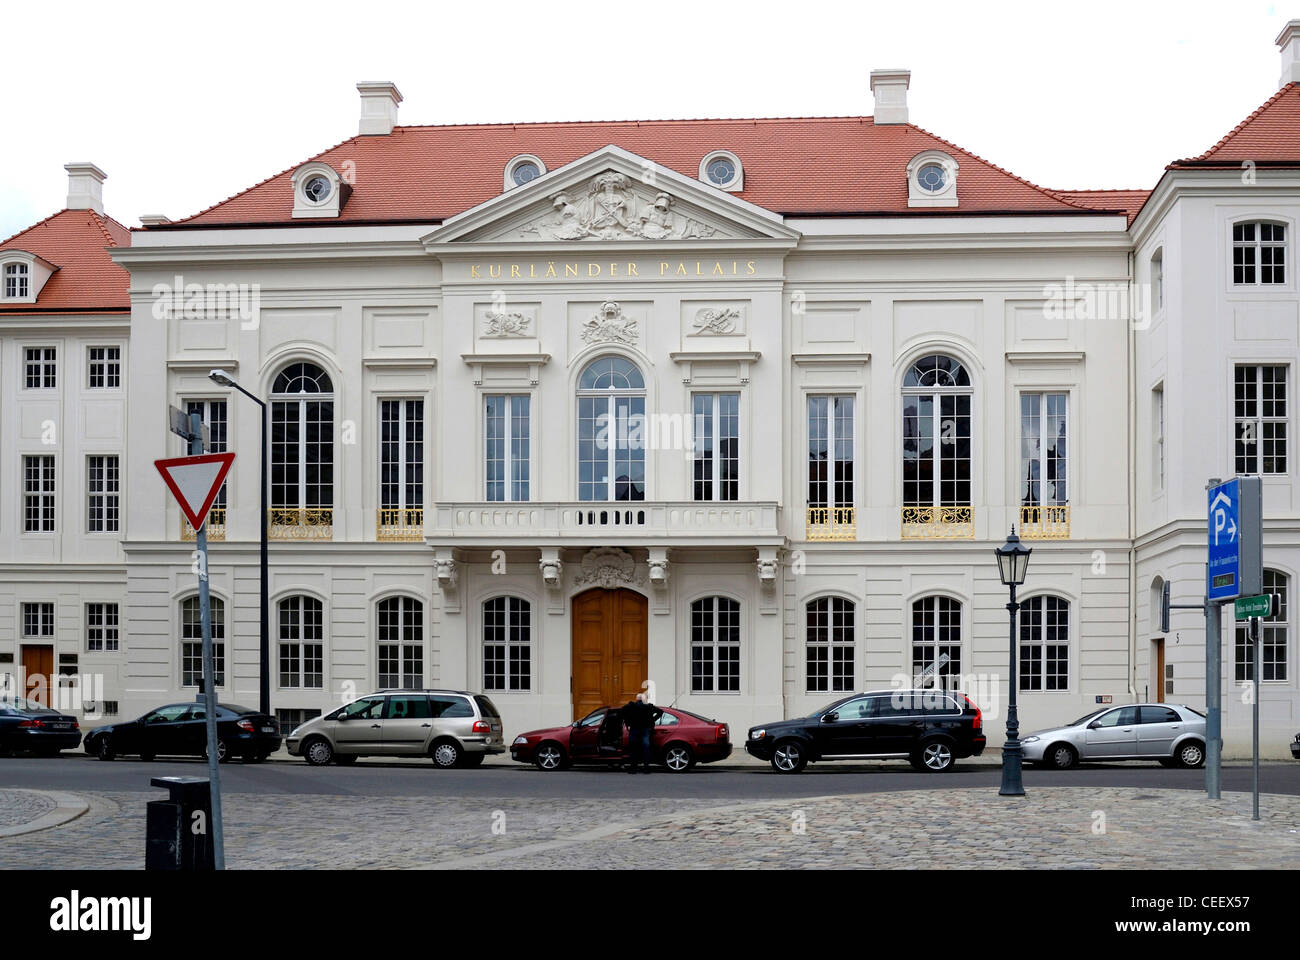 Historical building Kurlaender Palais in Dresden after the reconstruction. - Stock Image